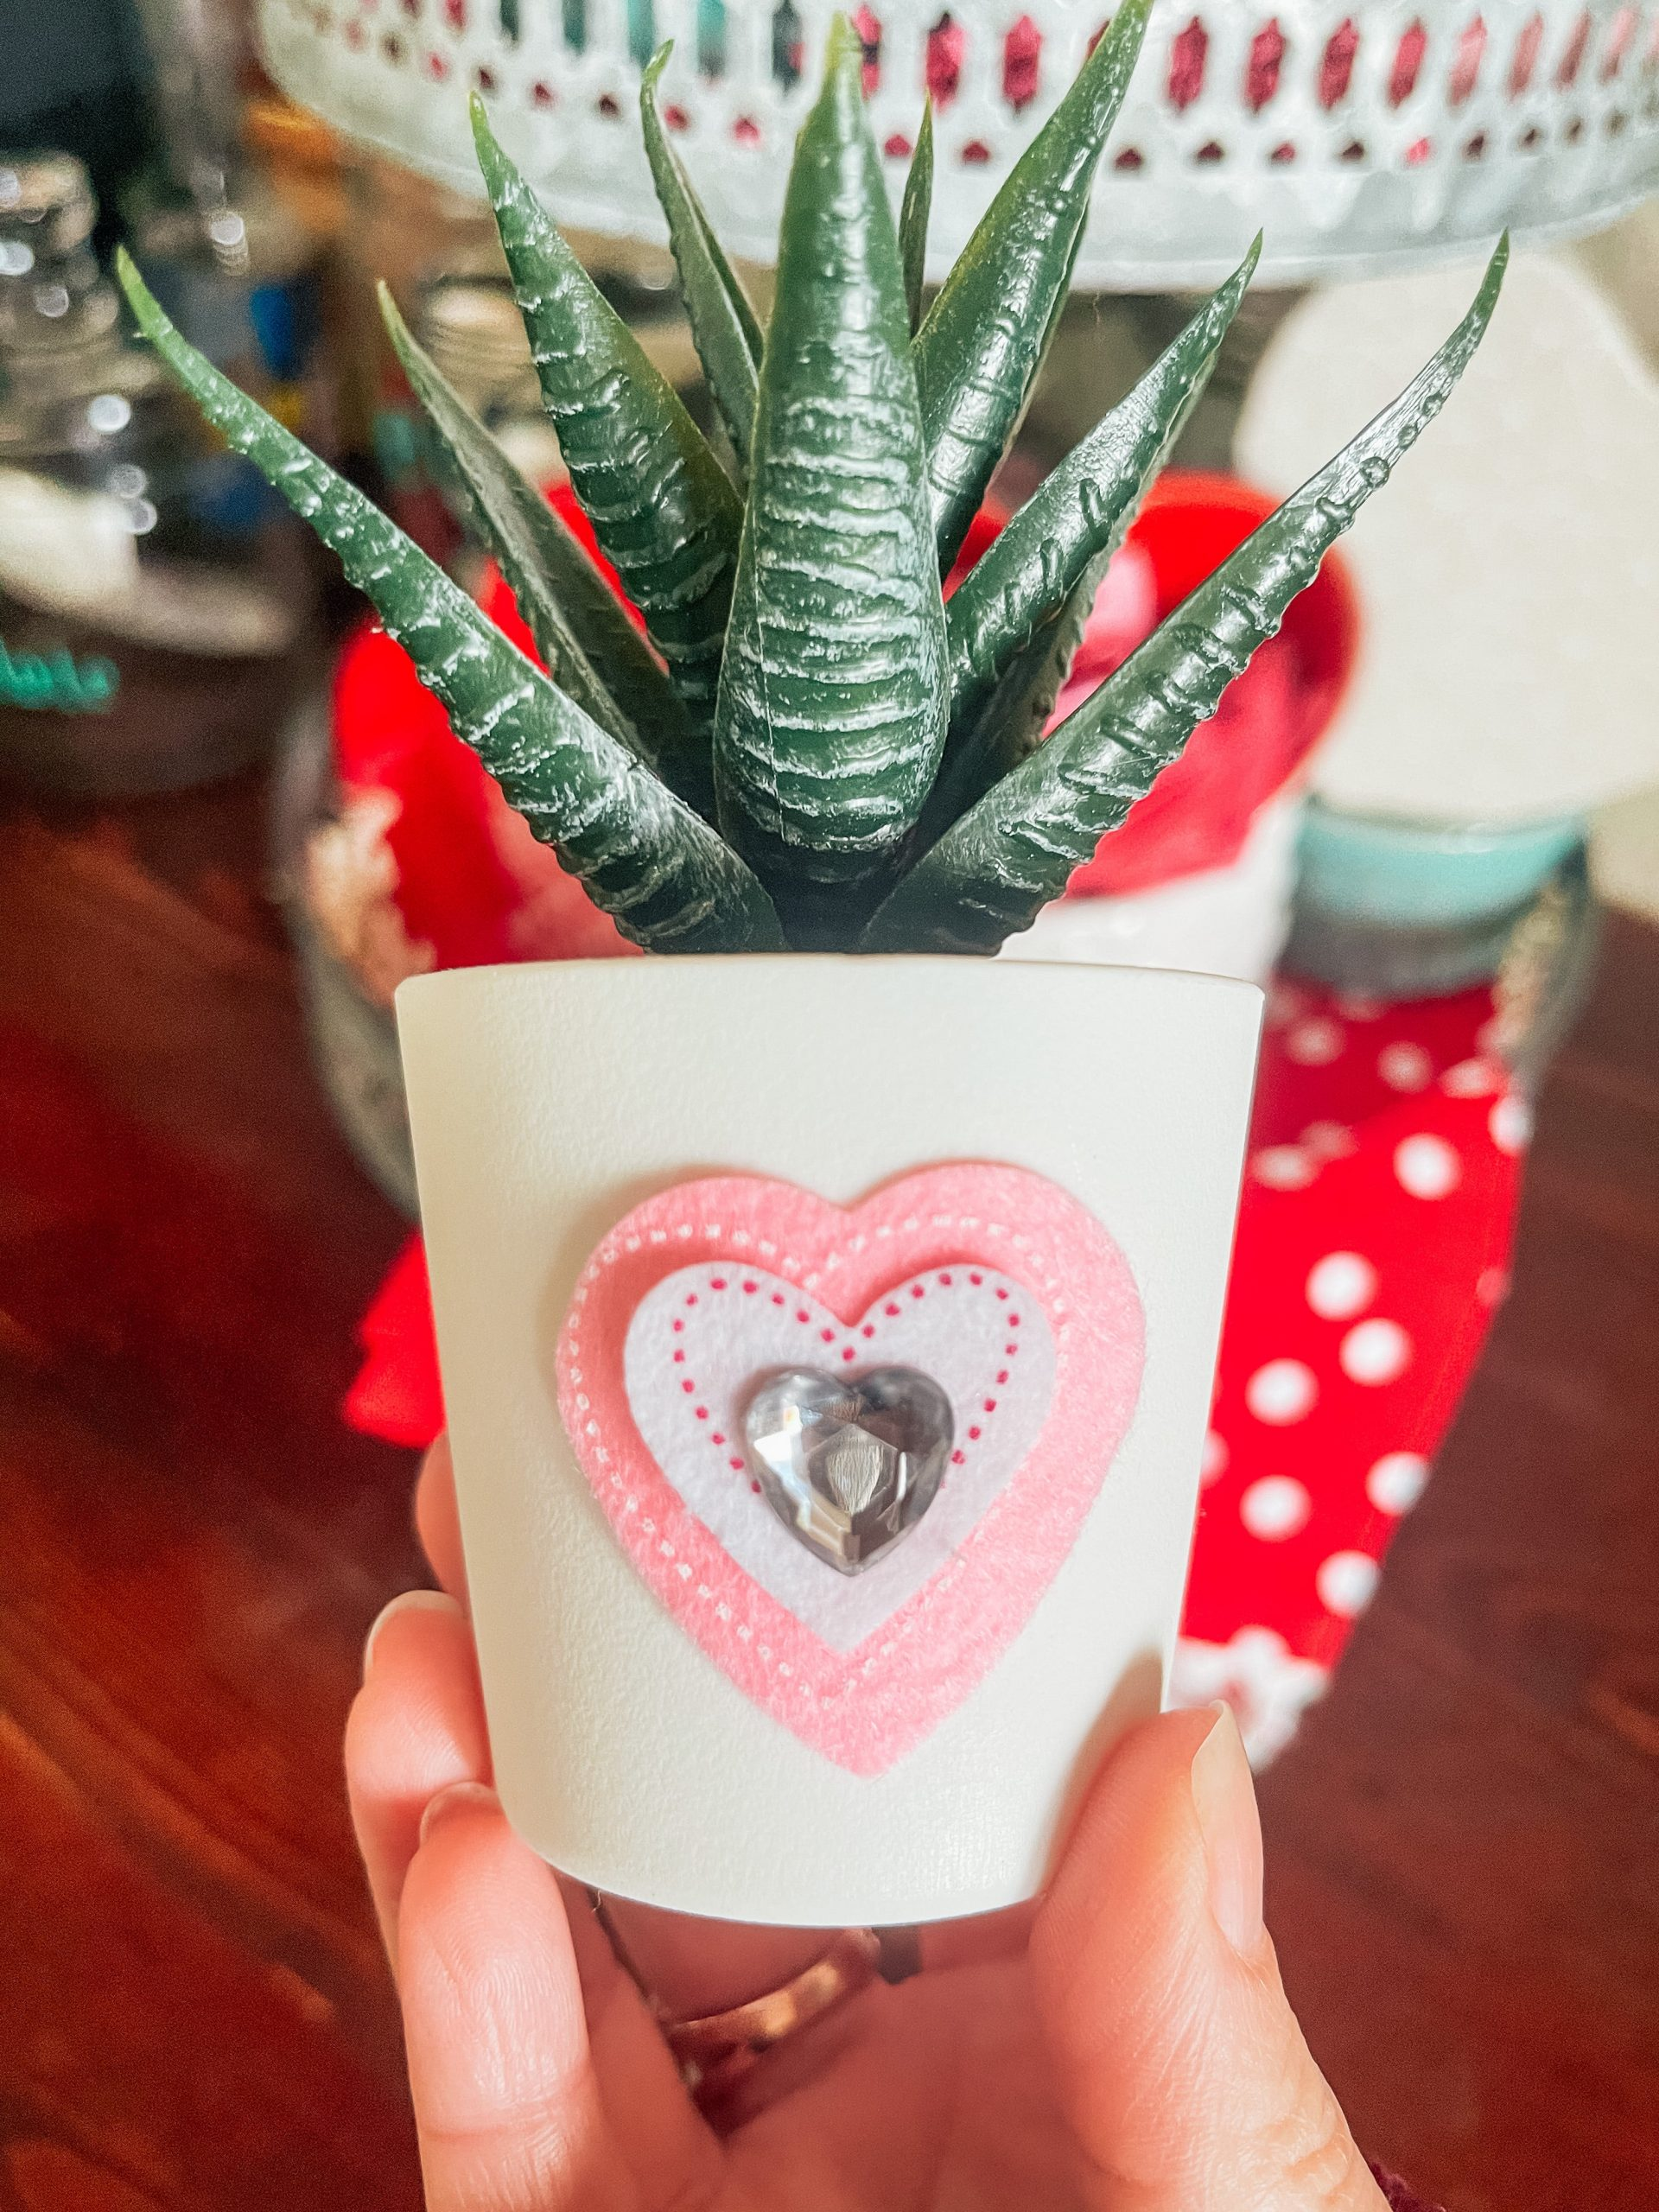 Succulent plant with heart sticker on vase